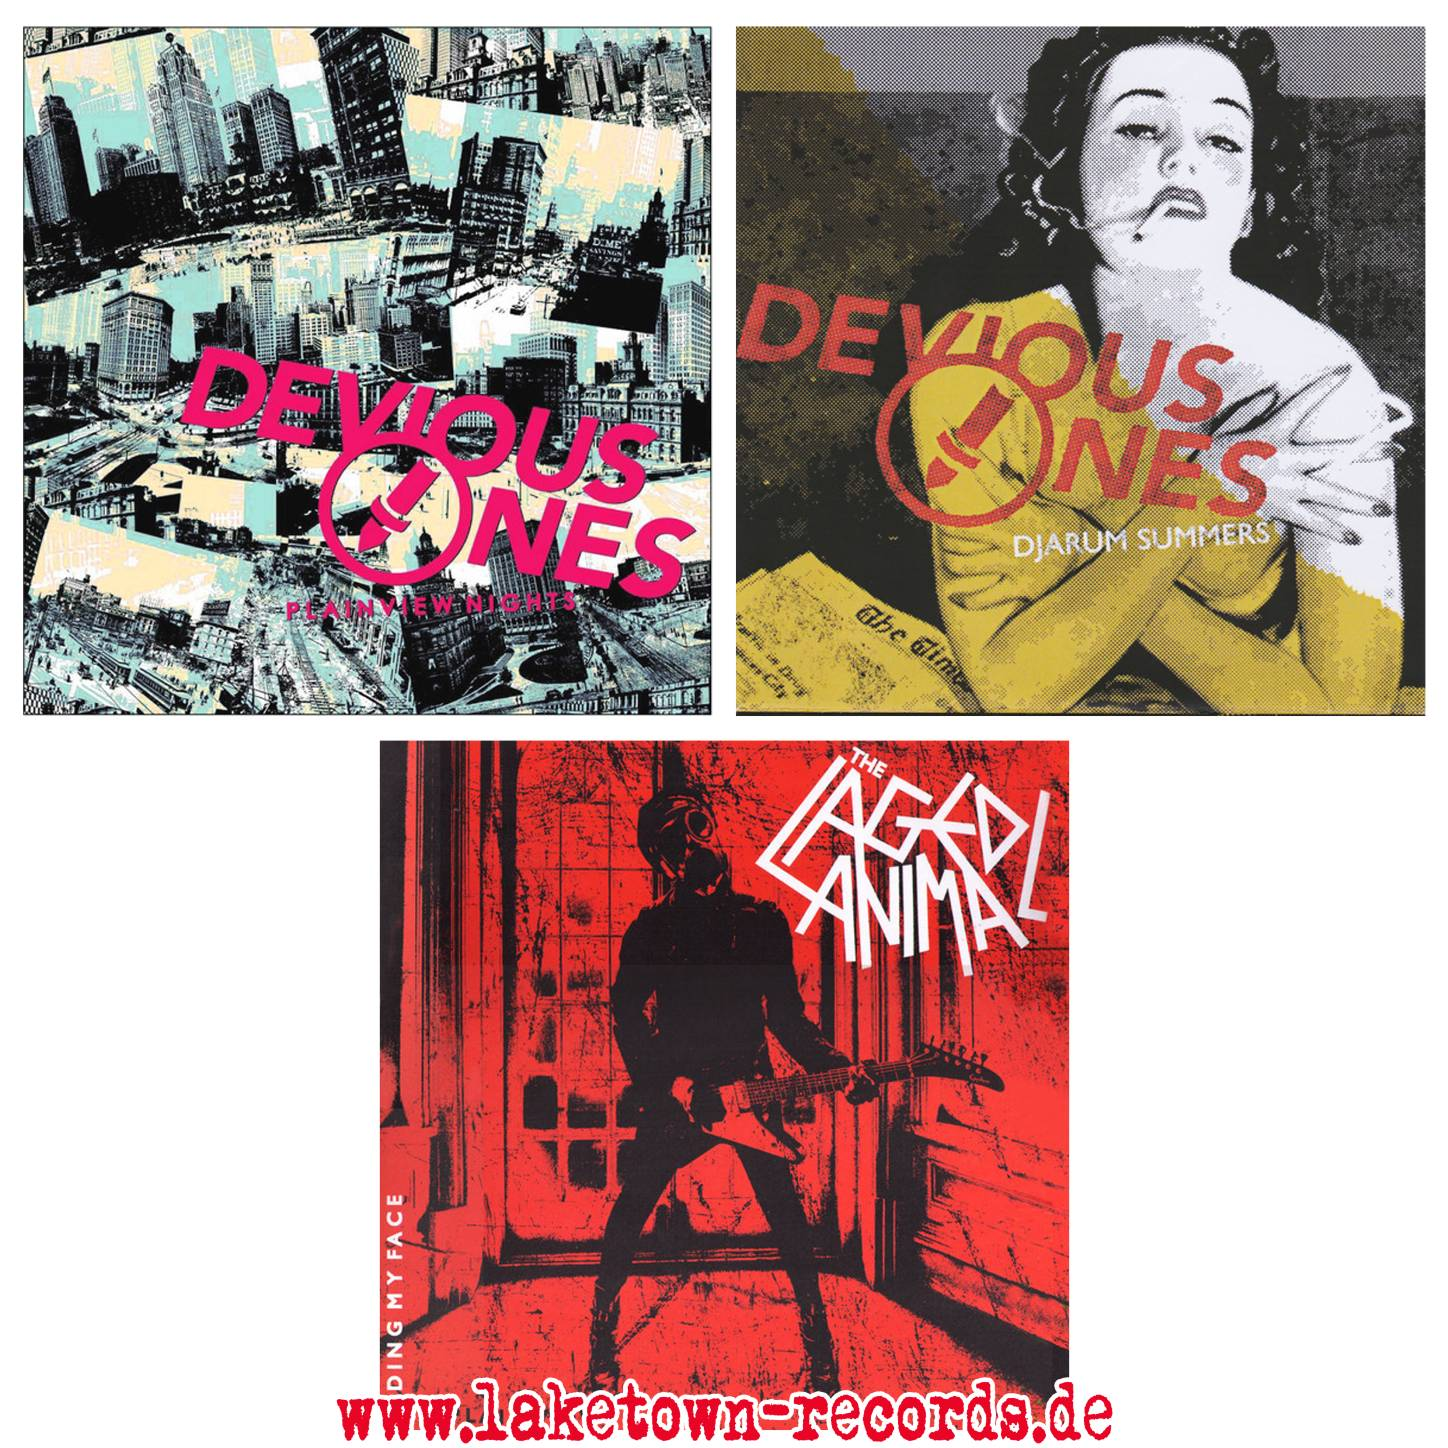 "DEVIOUS ONES (LP) - DEVIOUS ONES (7"") - THE CAGED ANIMAL (LP)"